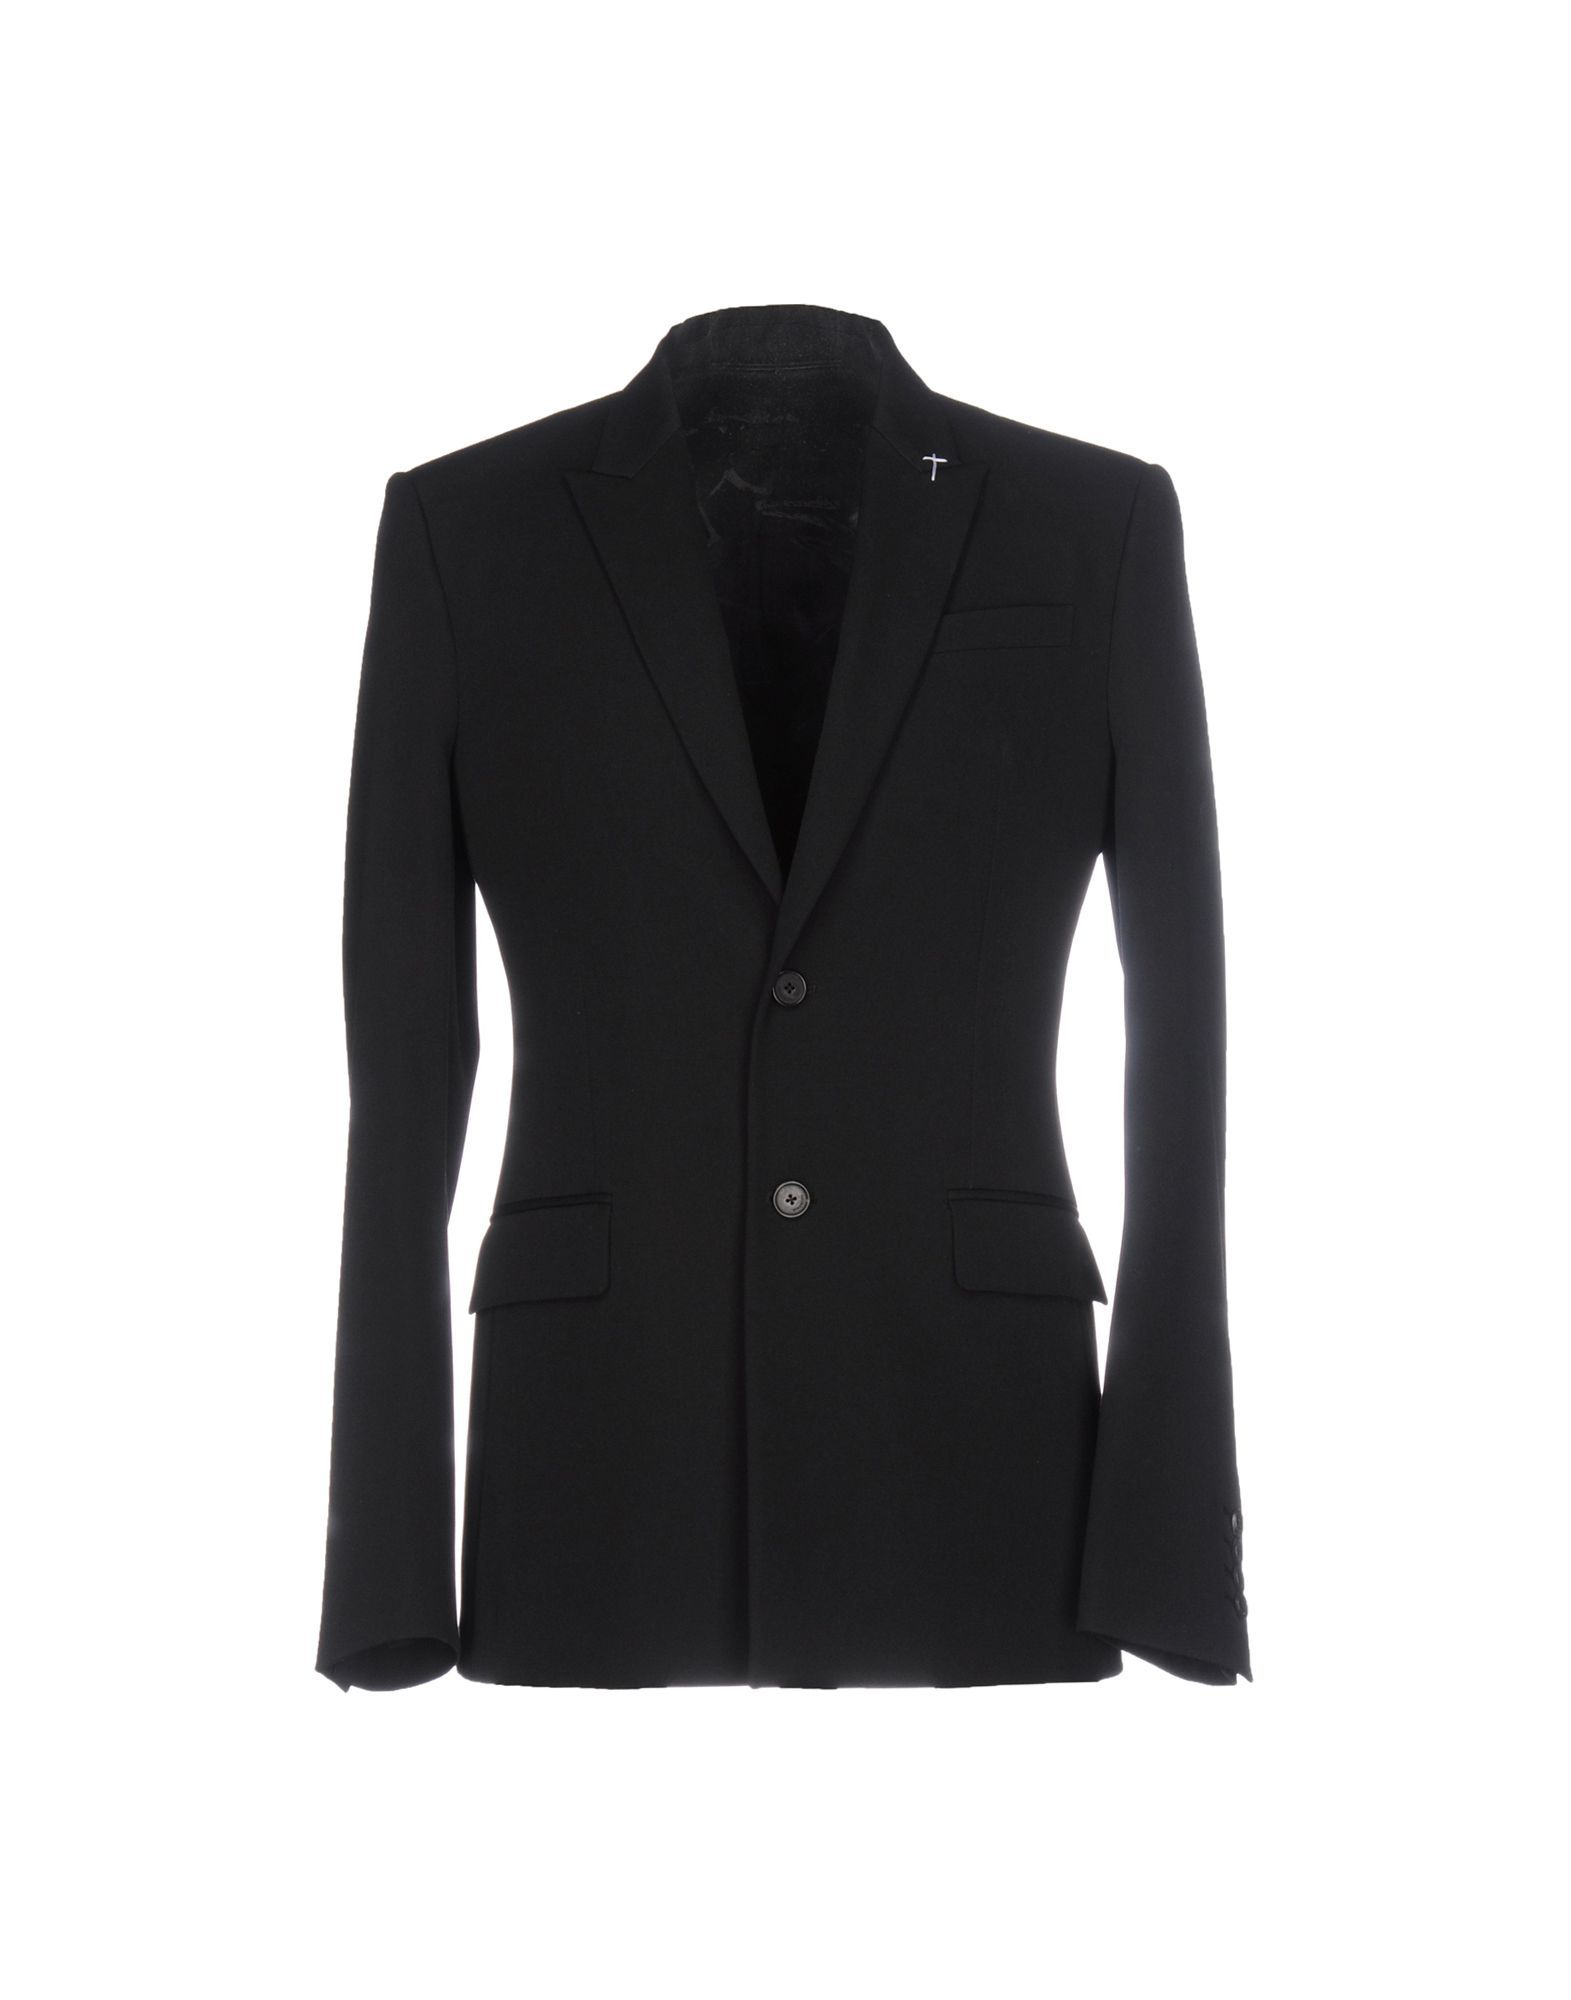 Givenchy Black Wool Single Breasted Jacket